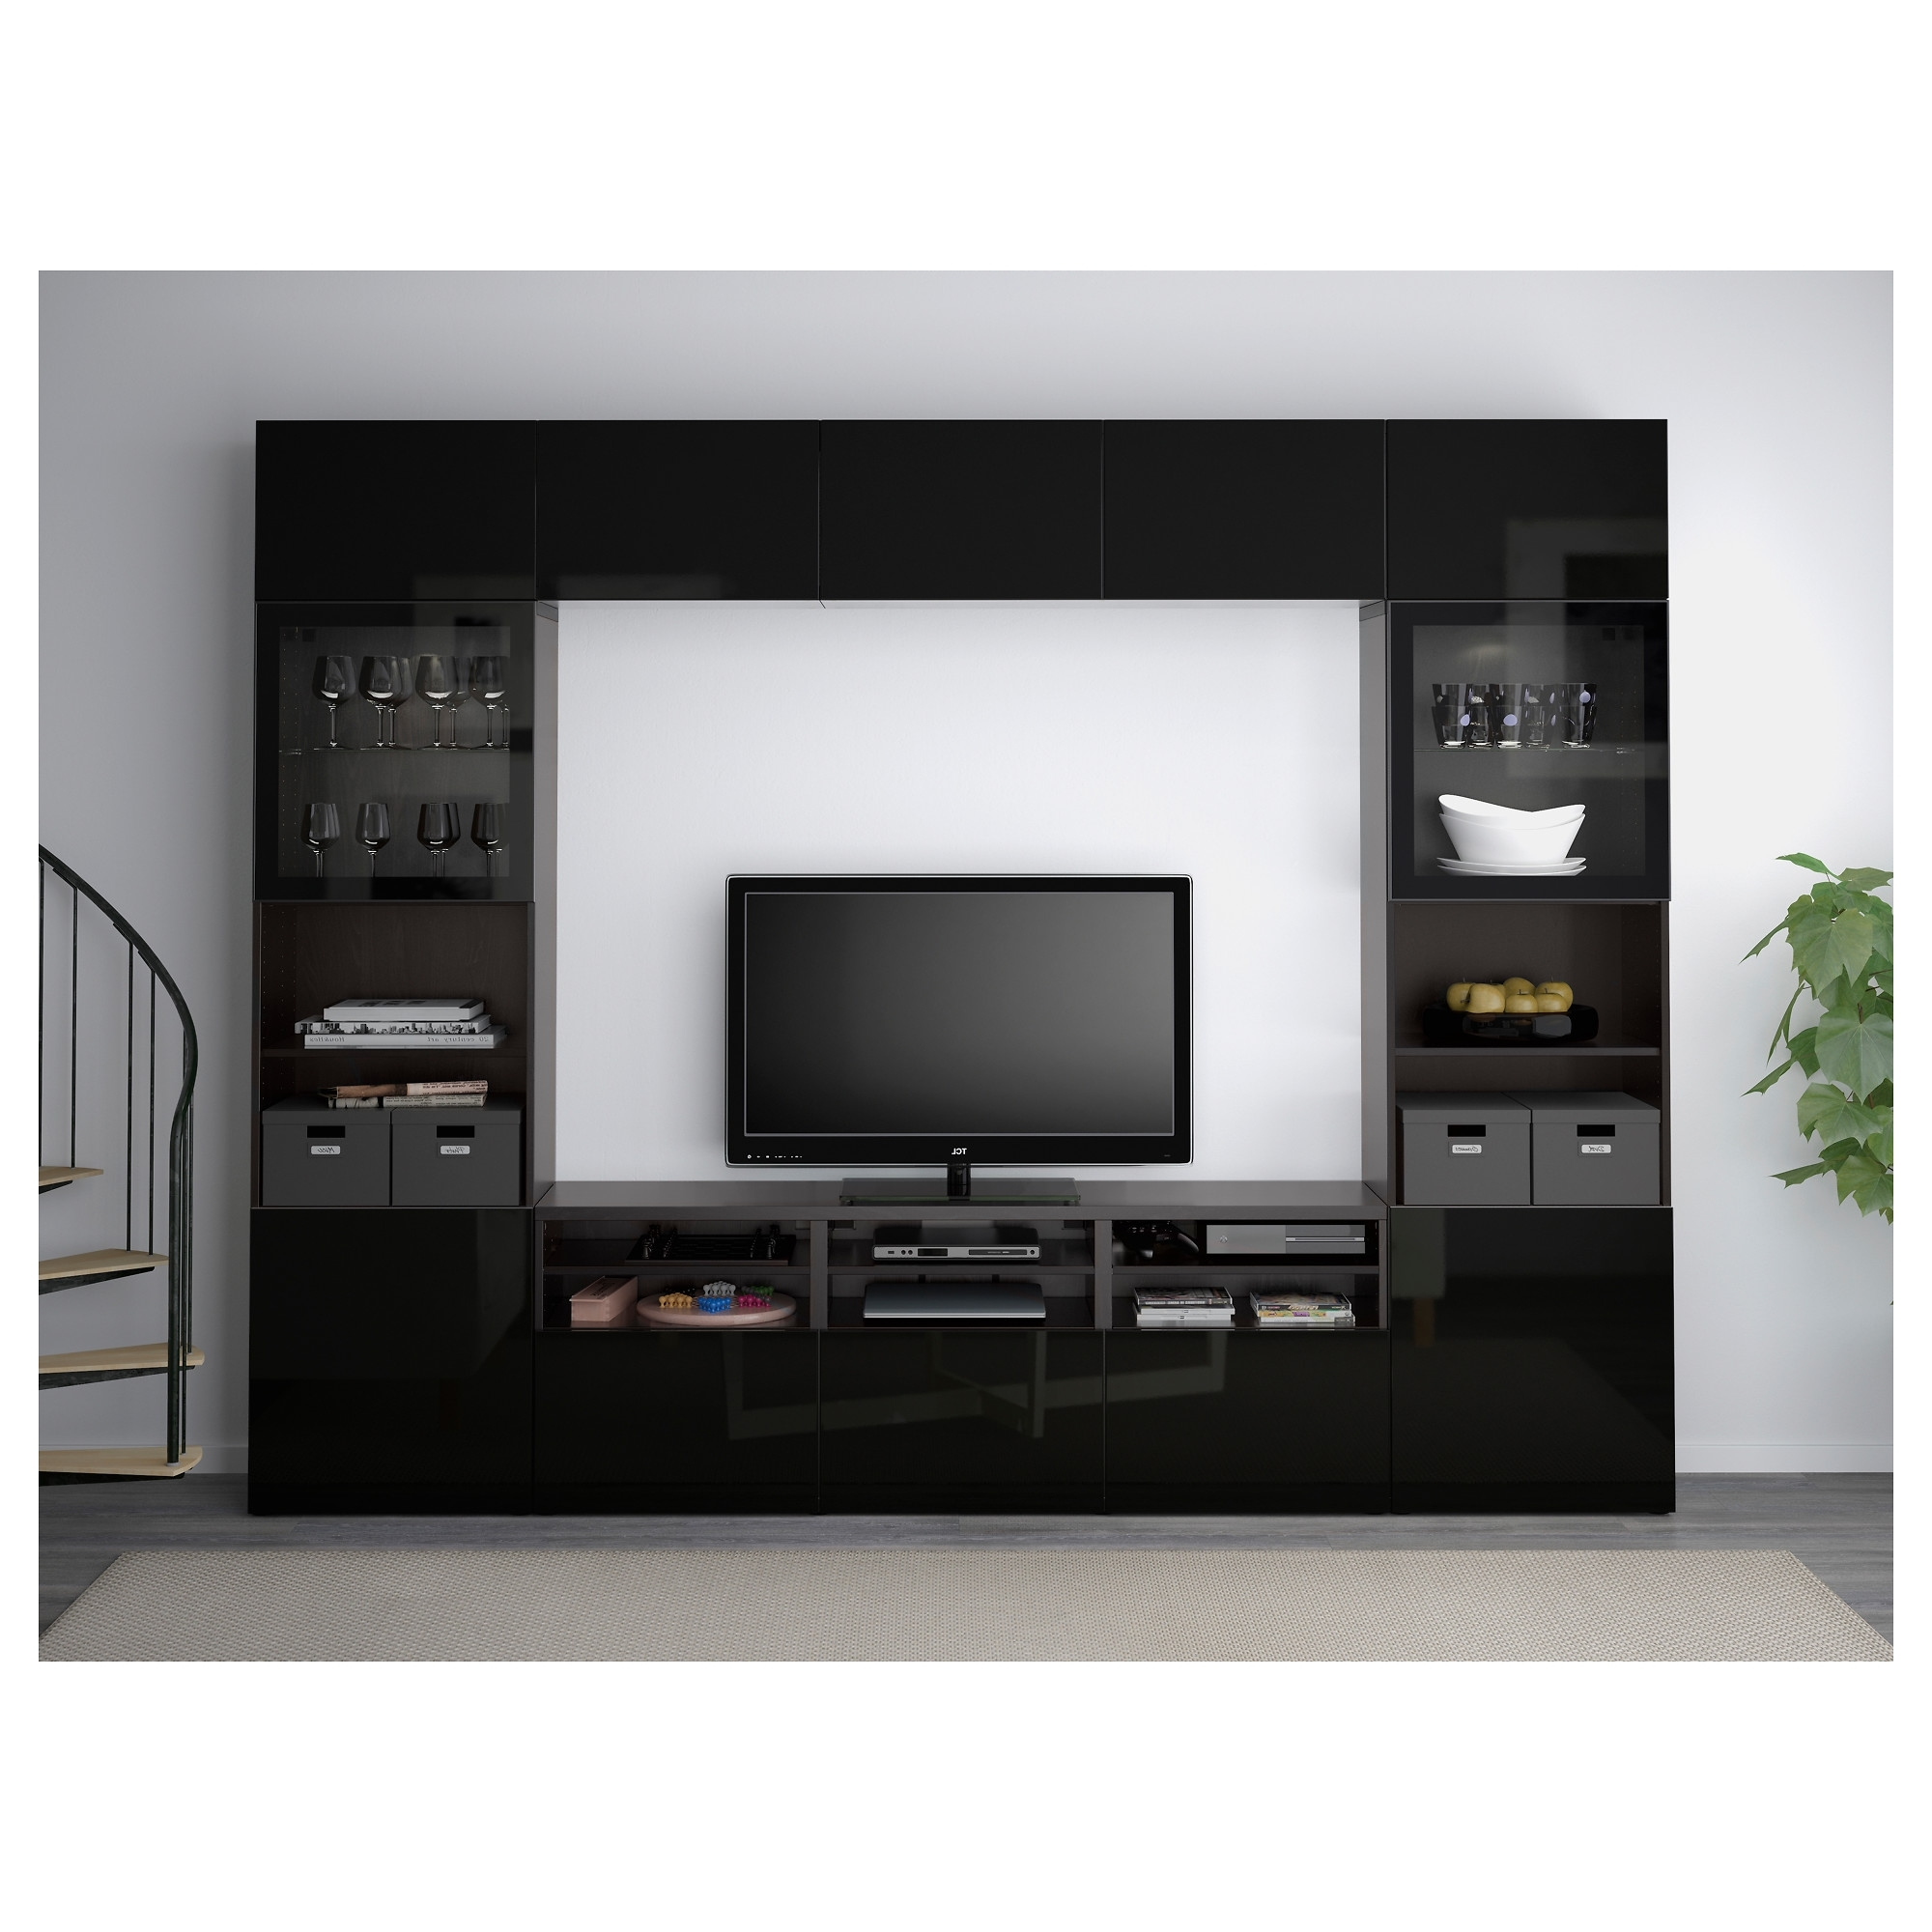 Fashionable Tv Storage Units Intended For Besta Tv Storage Combinationglass Doors Black Brownselsviken Ikea (View 12 of 15)